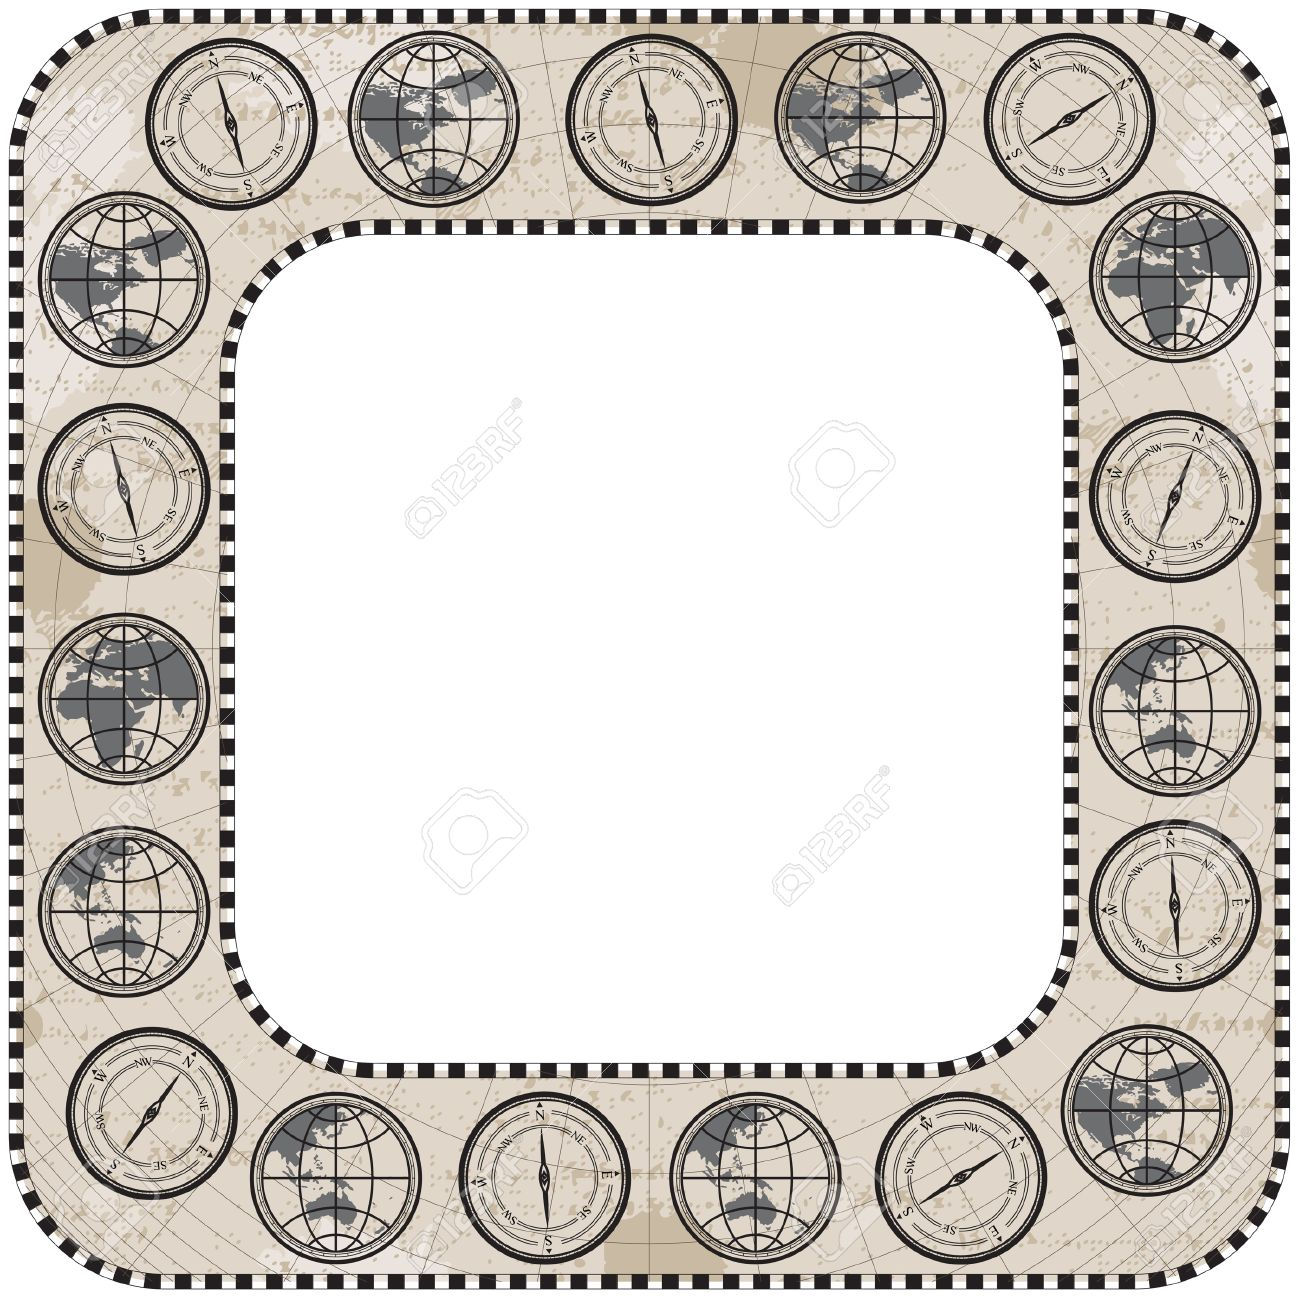 retro antique square frame border with round corner globe compass and map stock vector